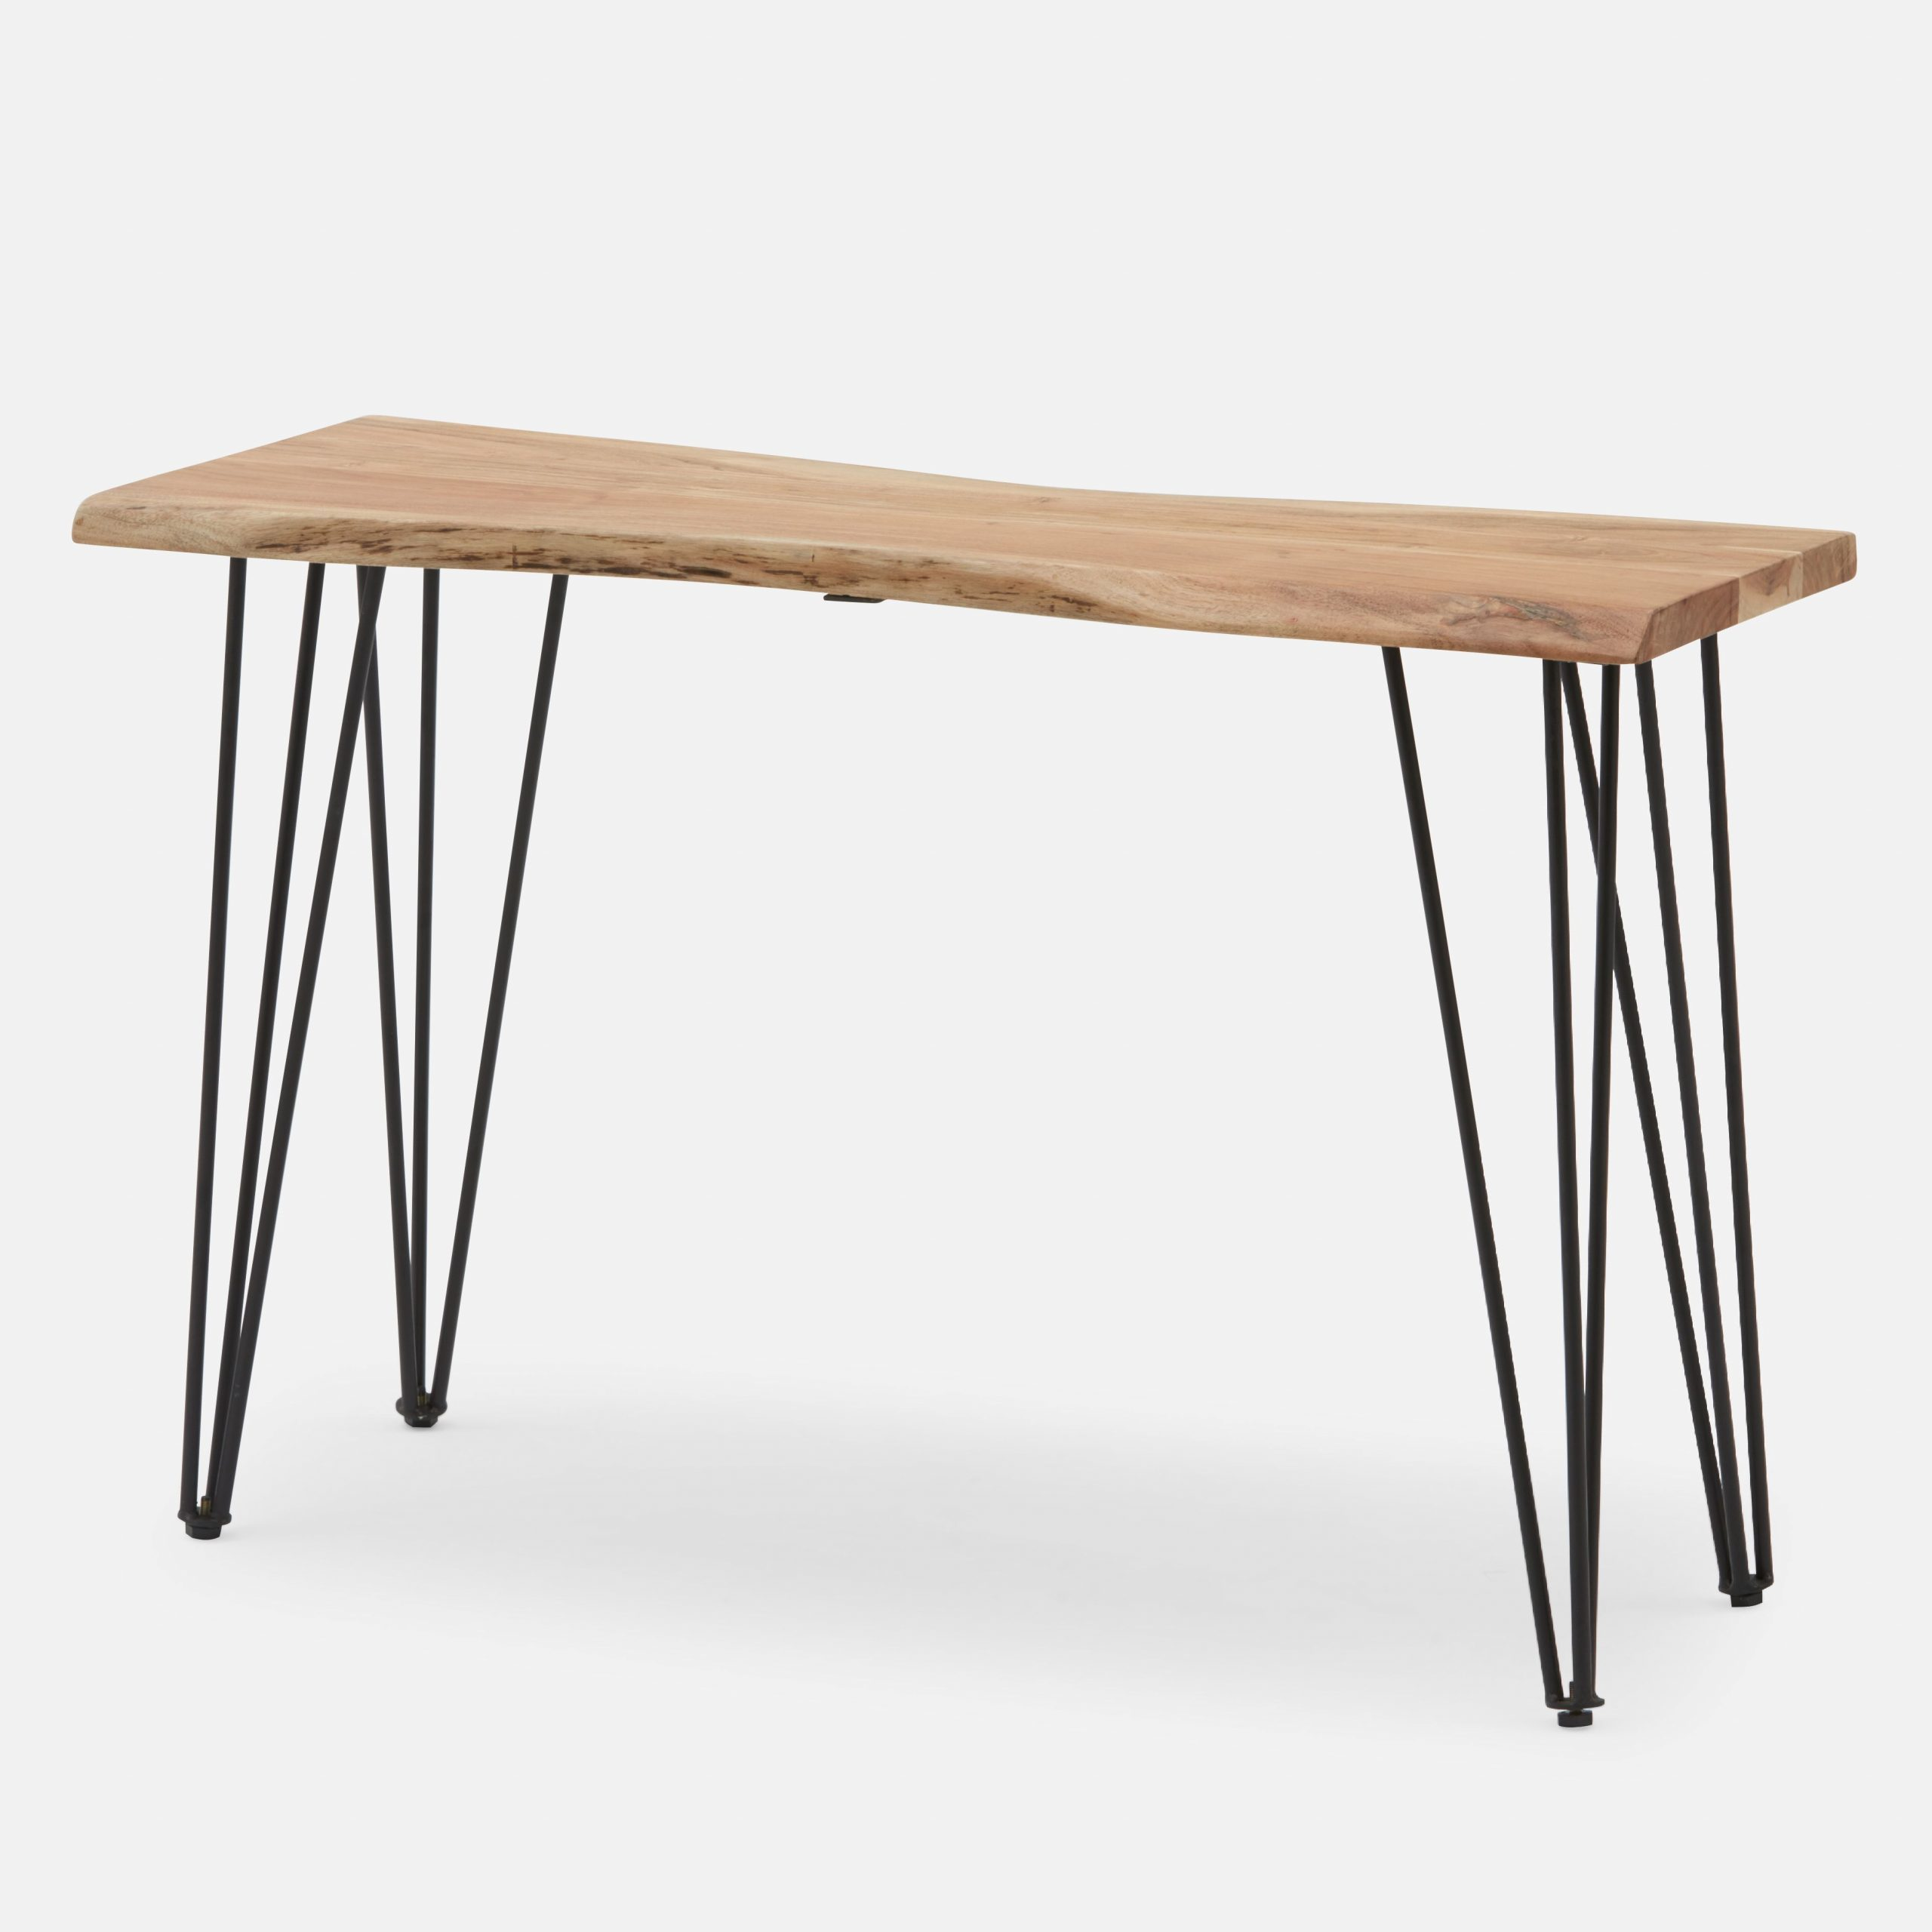 """Acacia Wood Top Dining Tables With Iron Legs On Raw Metal Within 2020 Solid Acacia Wood Console Table 120Cm (47"""") (View 4 of 25)"""